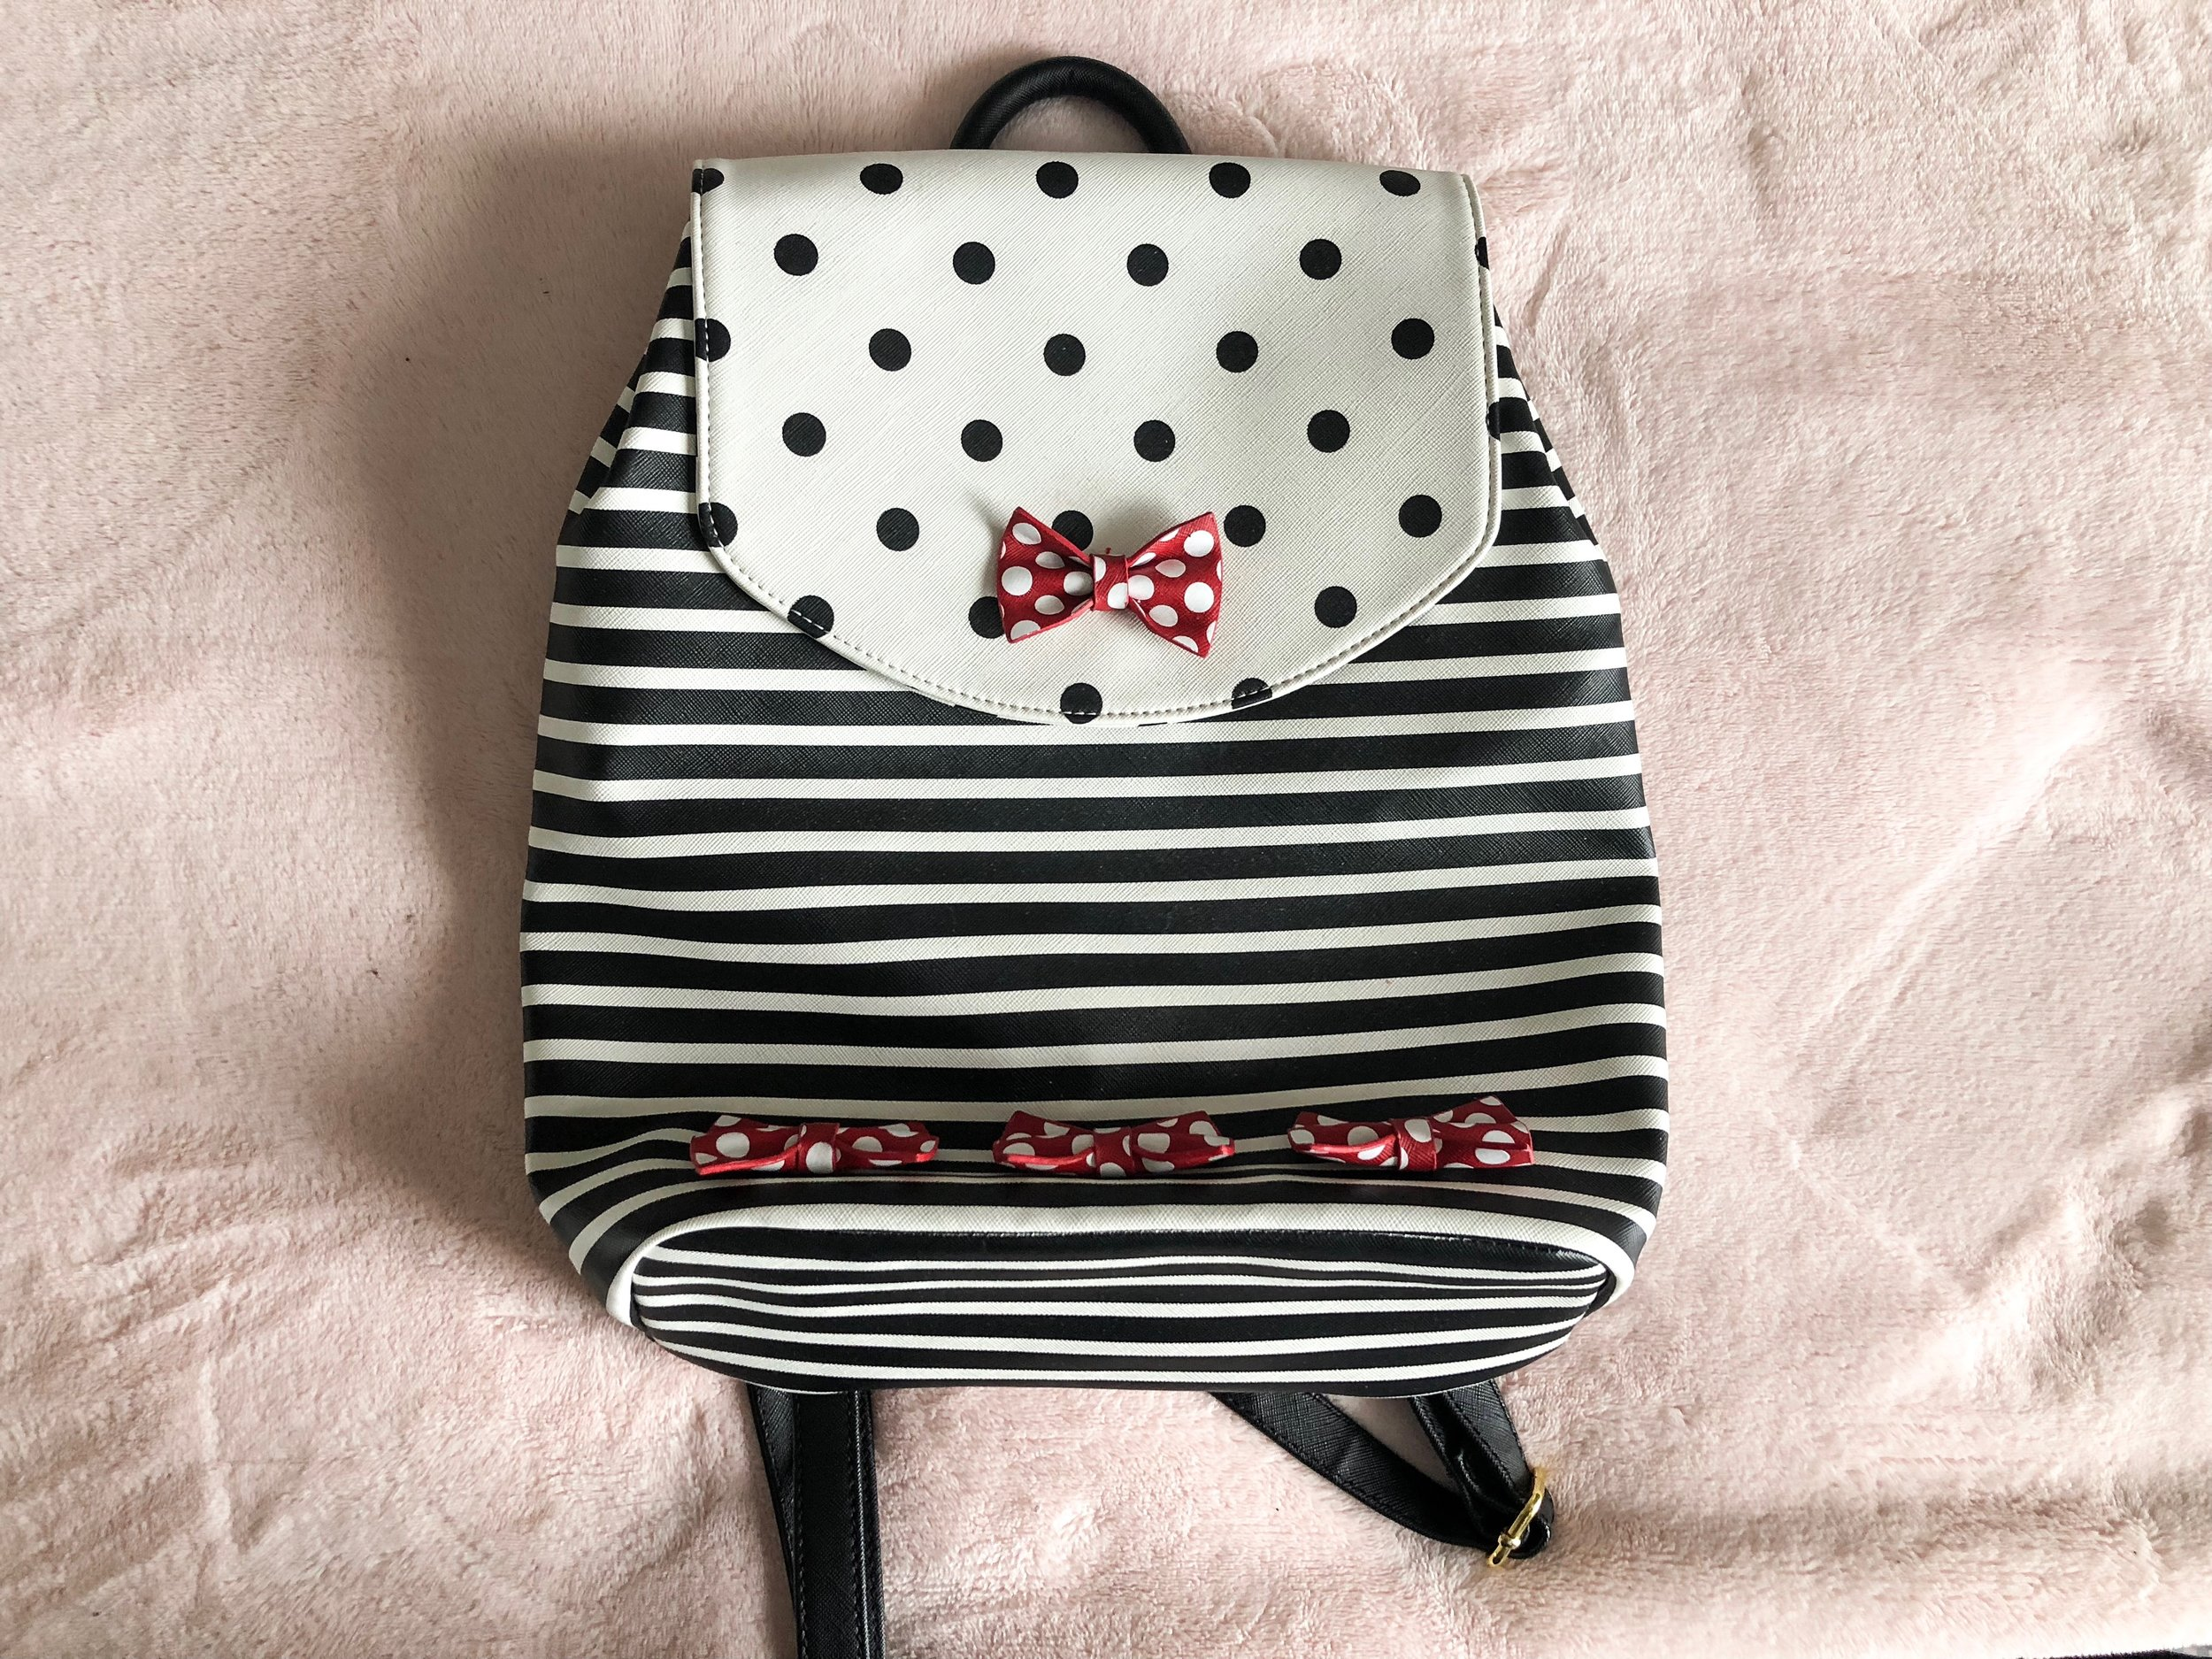 Minnie Backpack - If I'm in the parks for a long time, like a full day, I'll use this Minnie Mouse backpack from Disney instead of my purse - it just disperses weight better on my back and shoulders, and is easier to tote around for long periods of time.